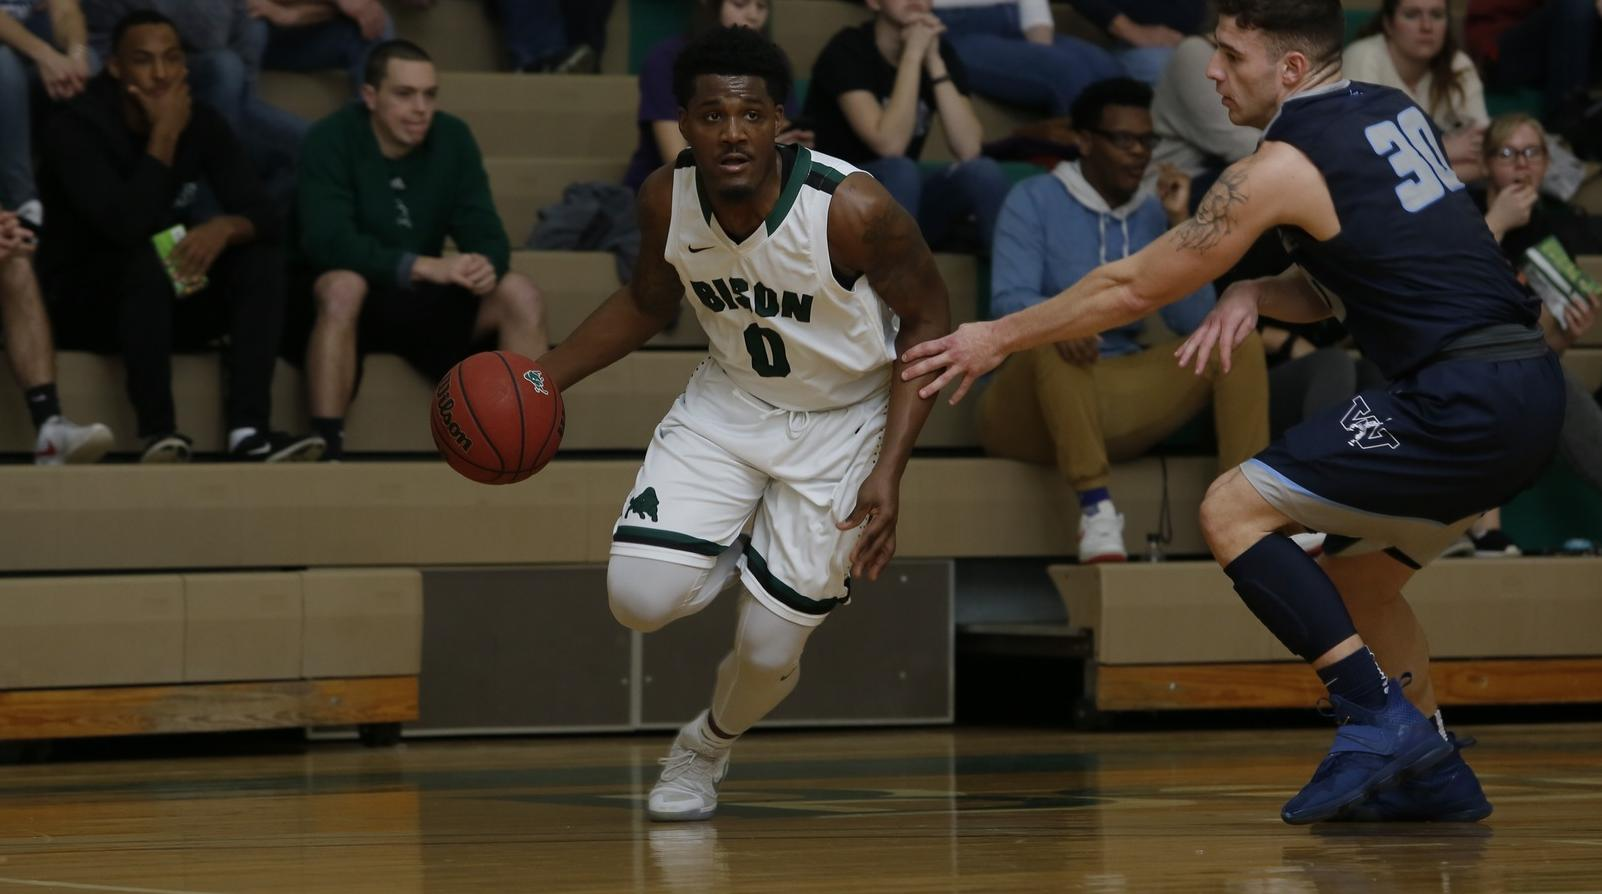 Bison rally past Westminster in PAC Semifinals, 76-72